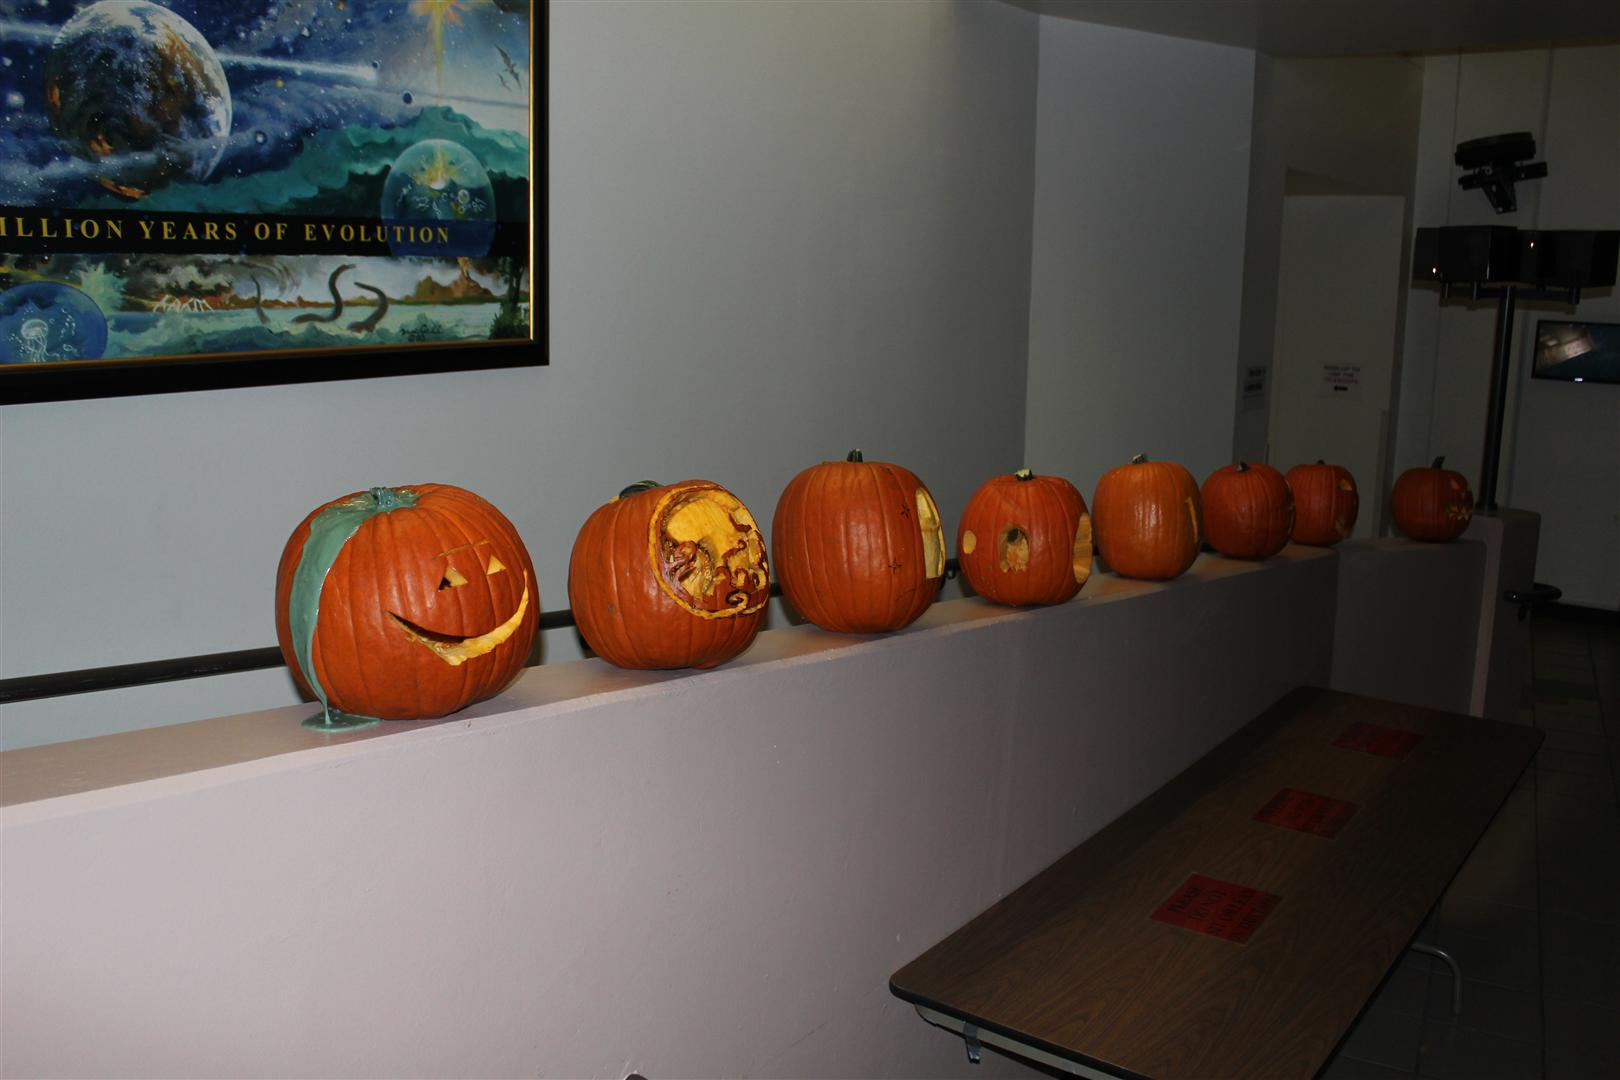 All pumpkins in Steward